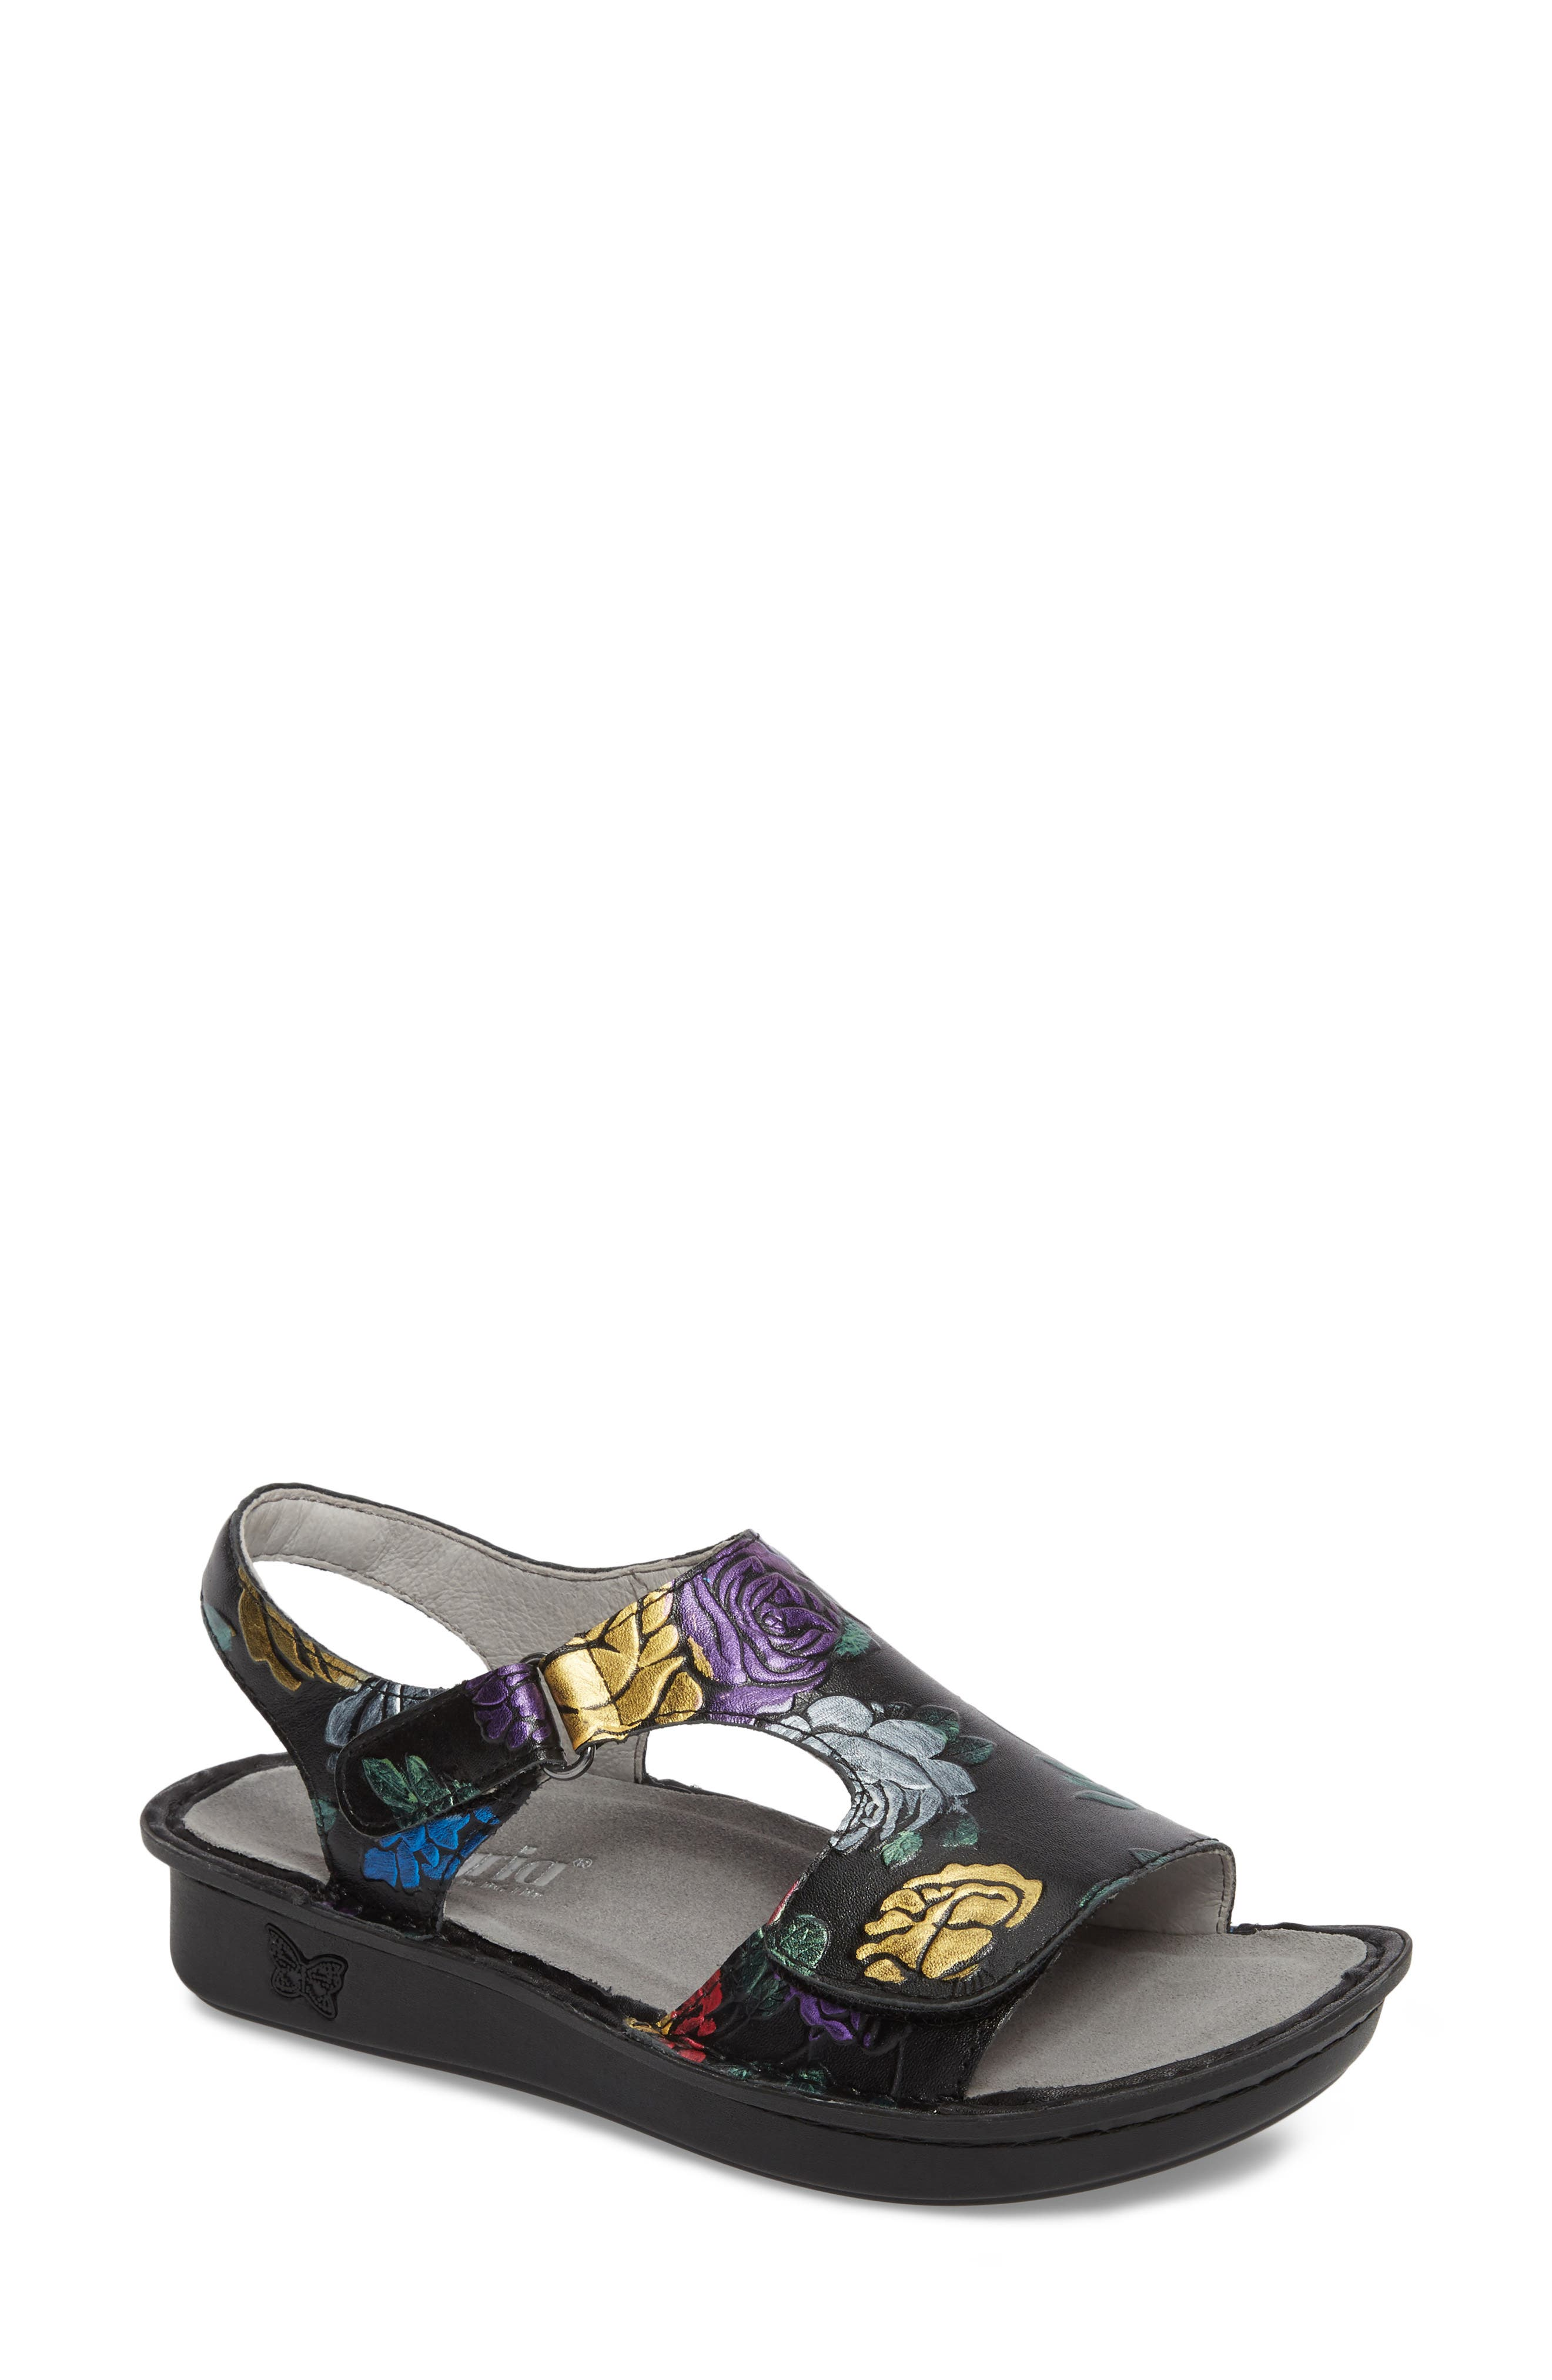 Alternate Image 1 Selected - Alegria Viki Embroidered Sandal (Women)